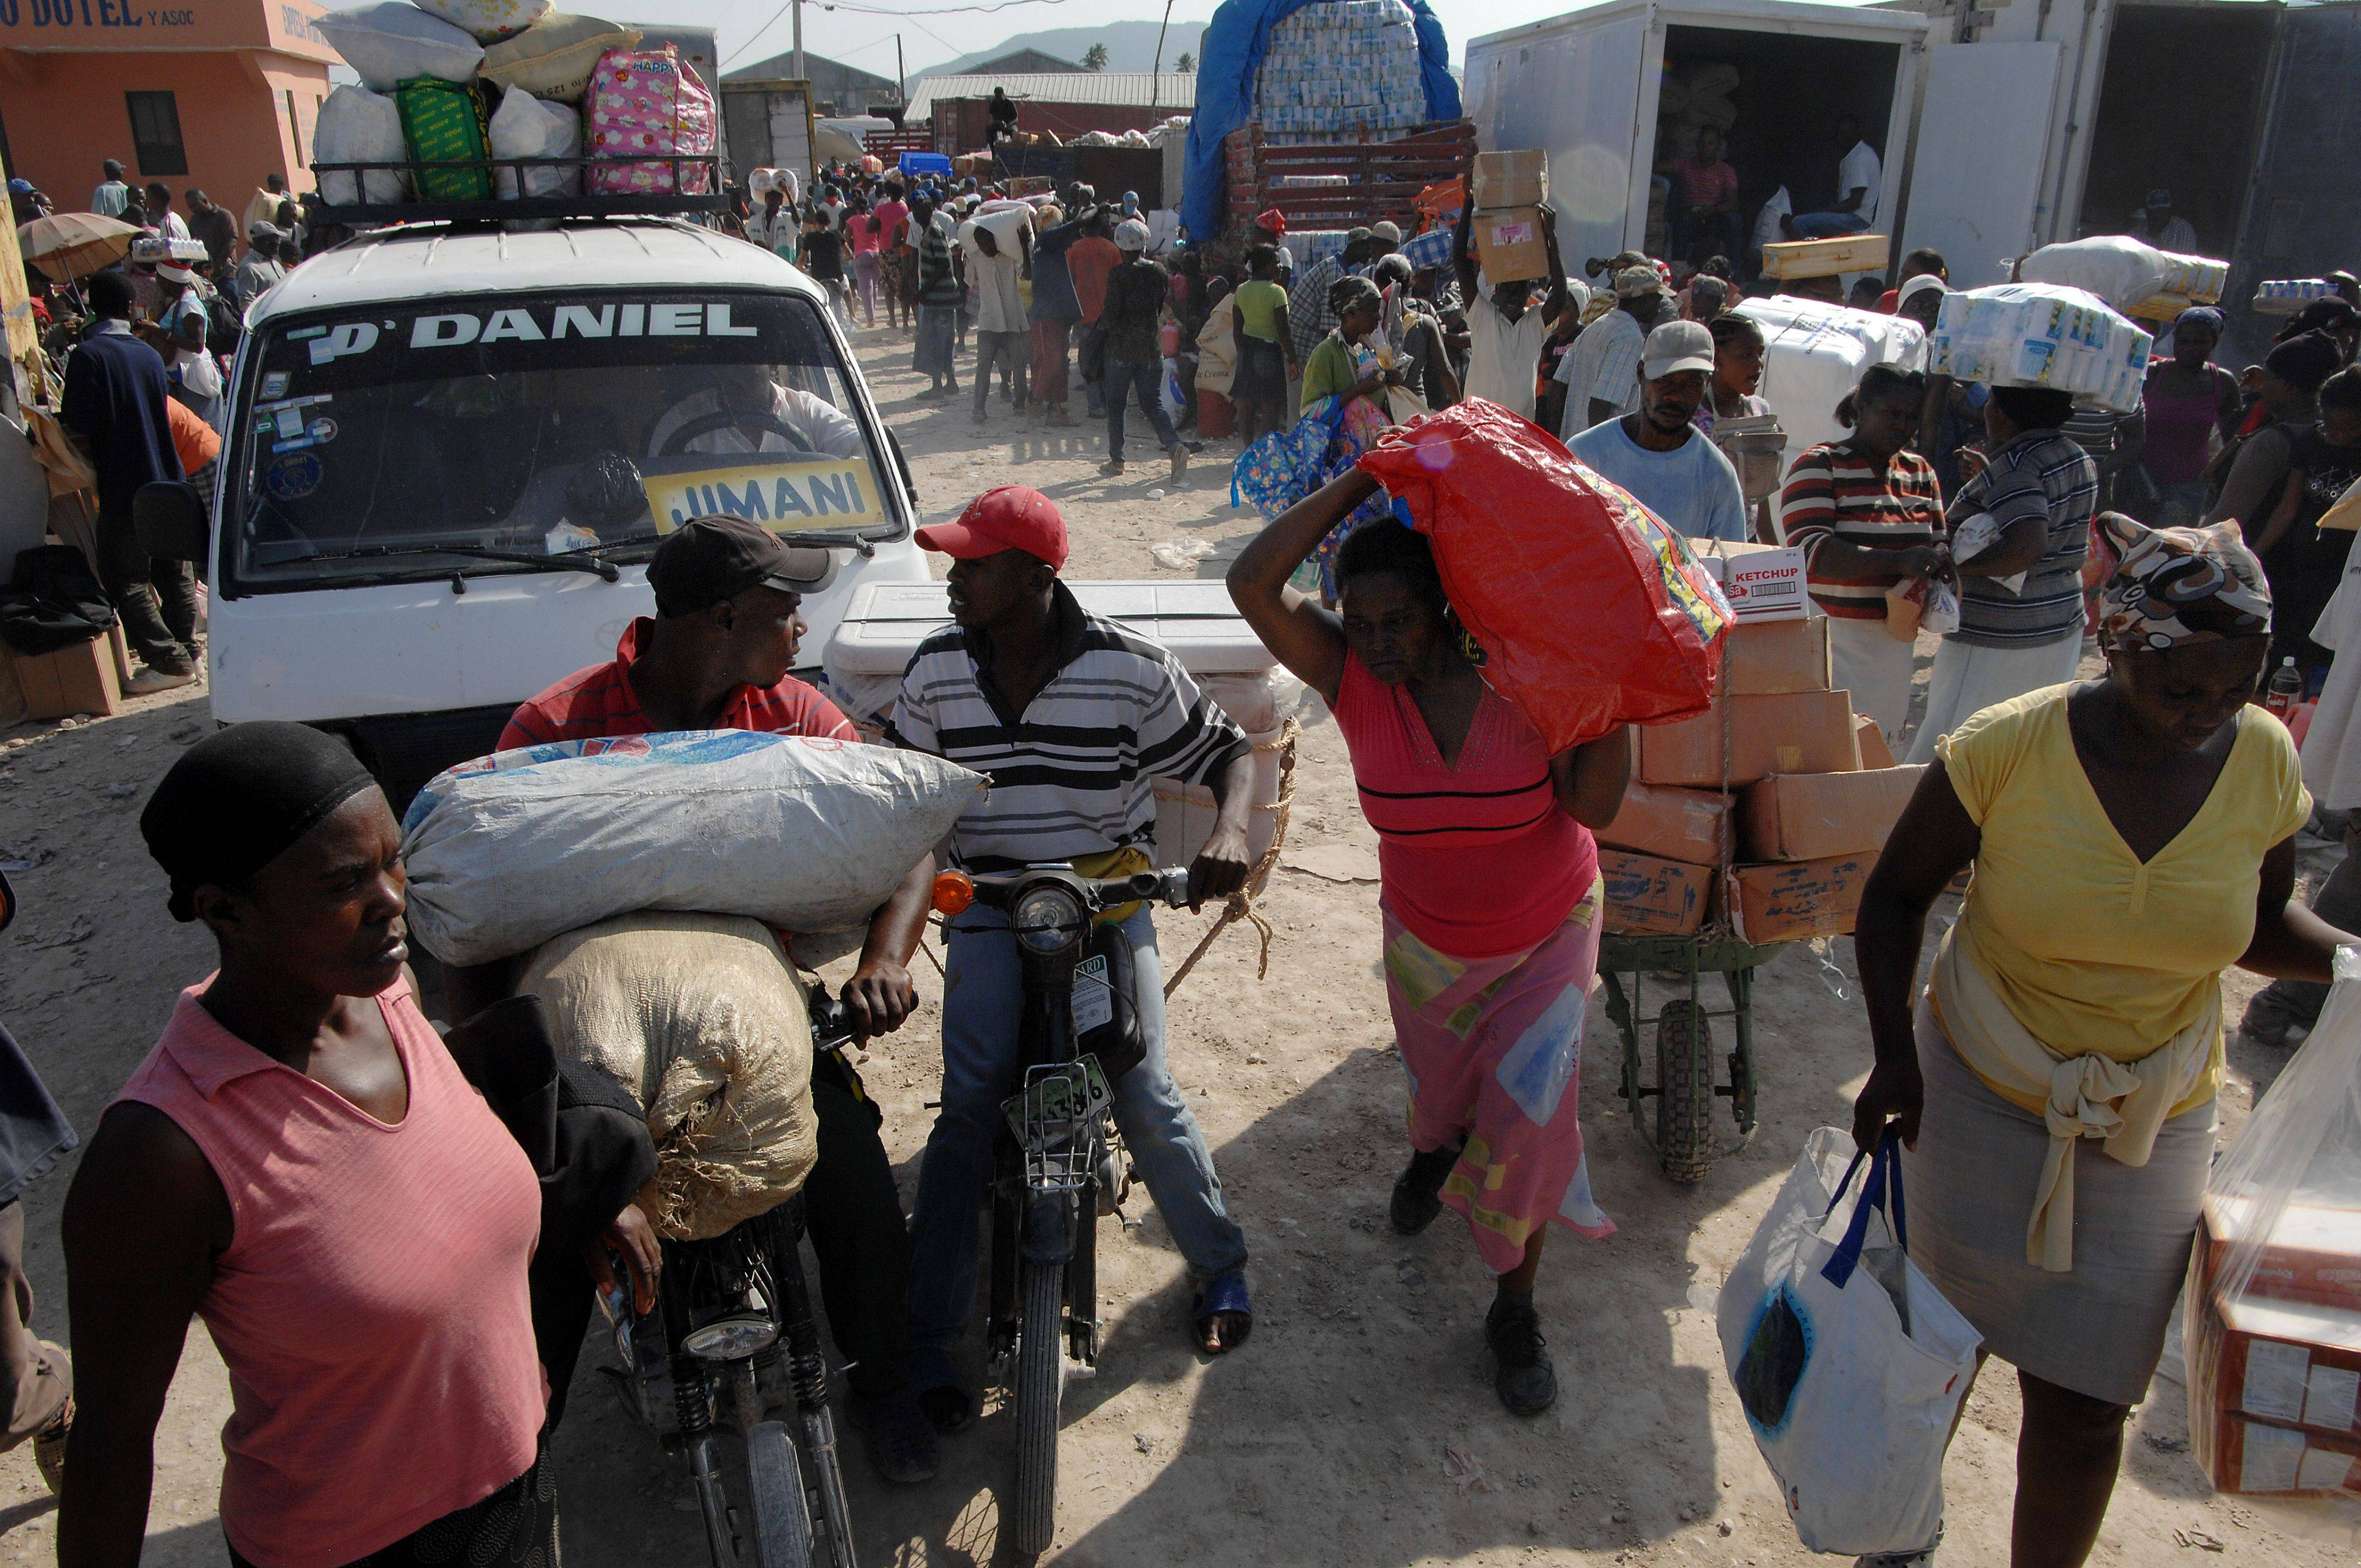 The border Haiti and the Dominican Republic share is jam-packed with a bustle of activity.